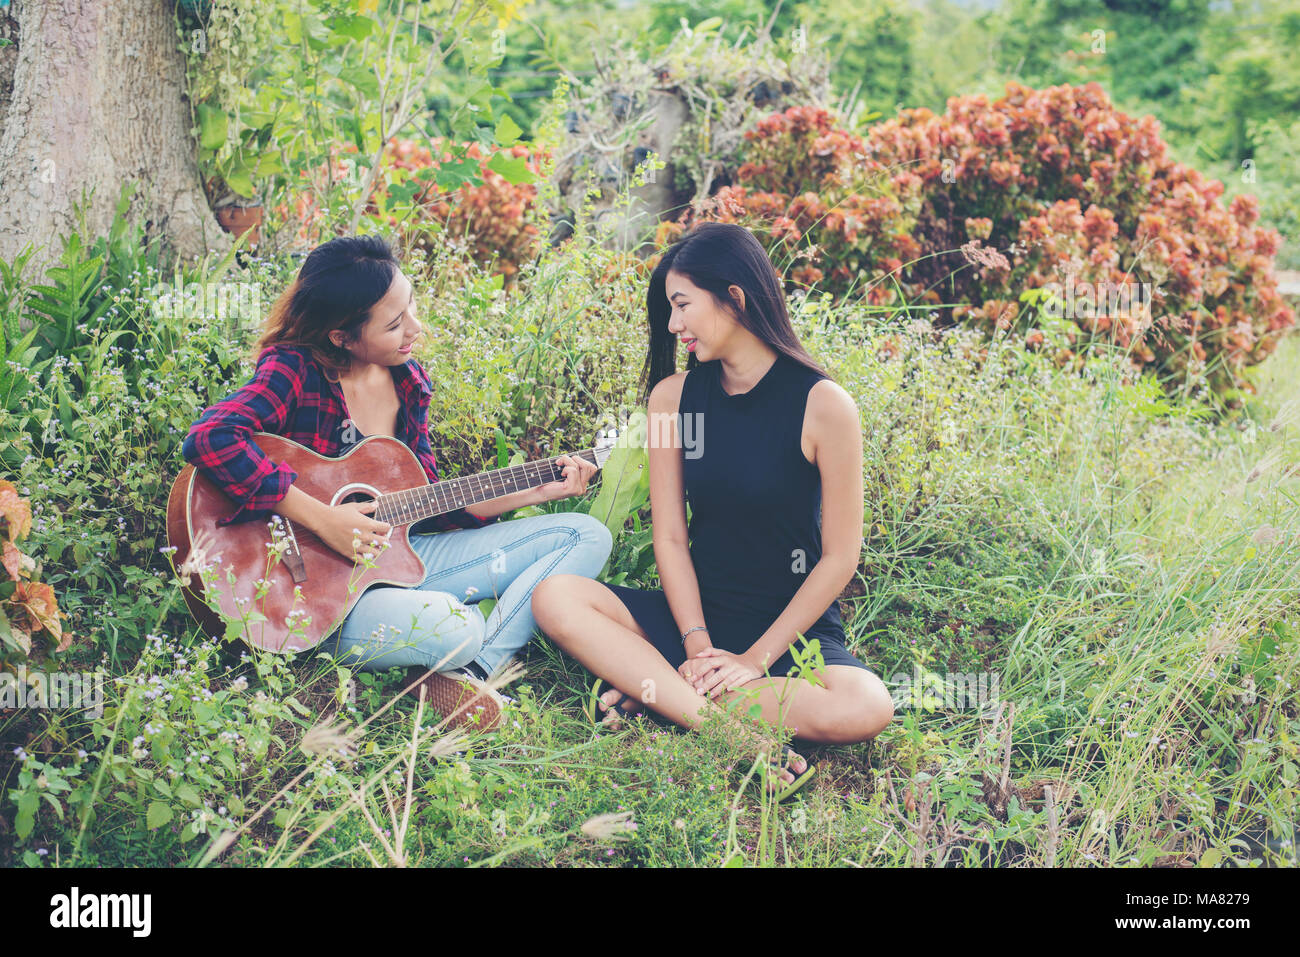 Young teenage looking at her female friend while playing guitar,Relaxing time enjoyment. - Stock Image